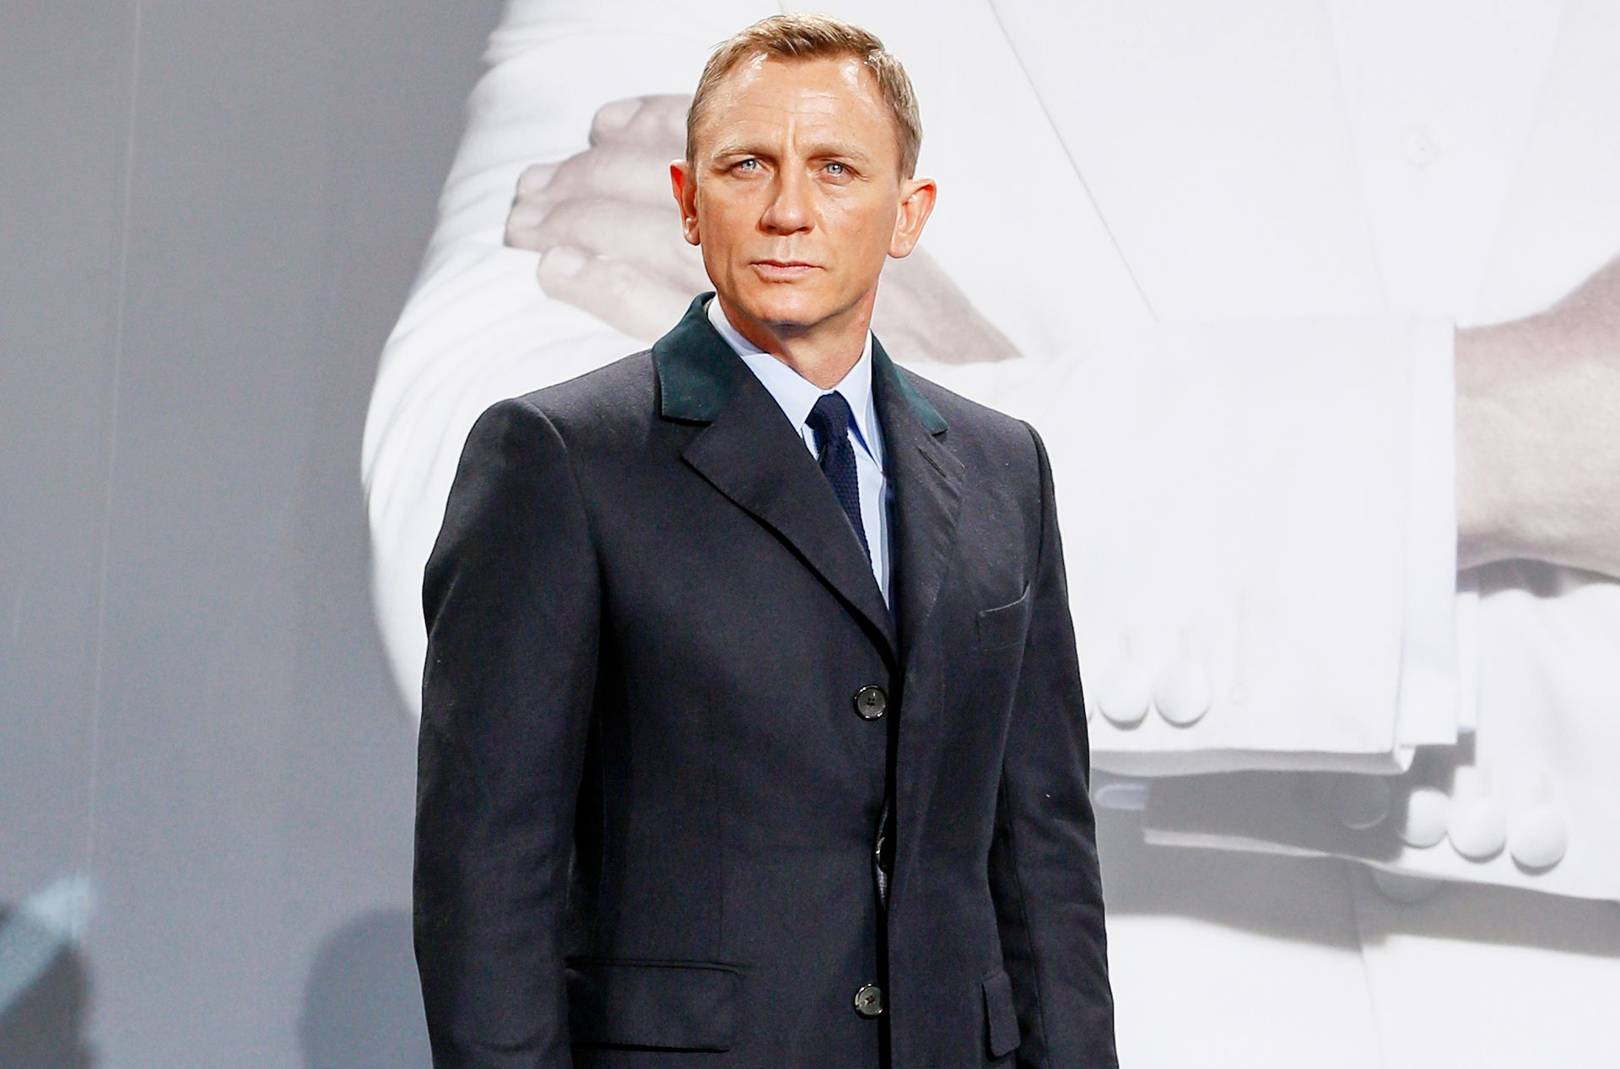 f7a8150ed 5 style lessons you can learn from Daniel Craig | British GQ